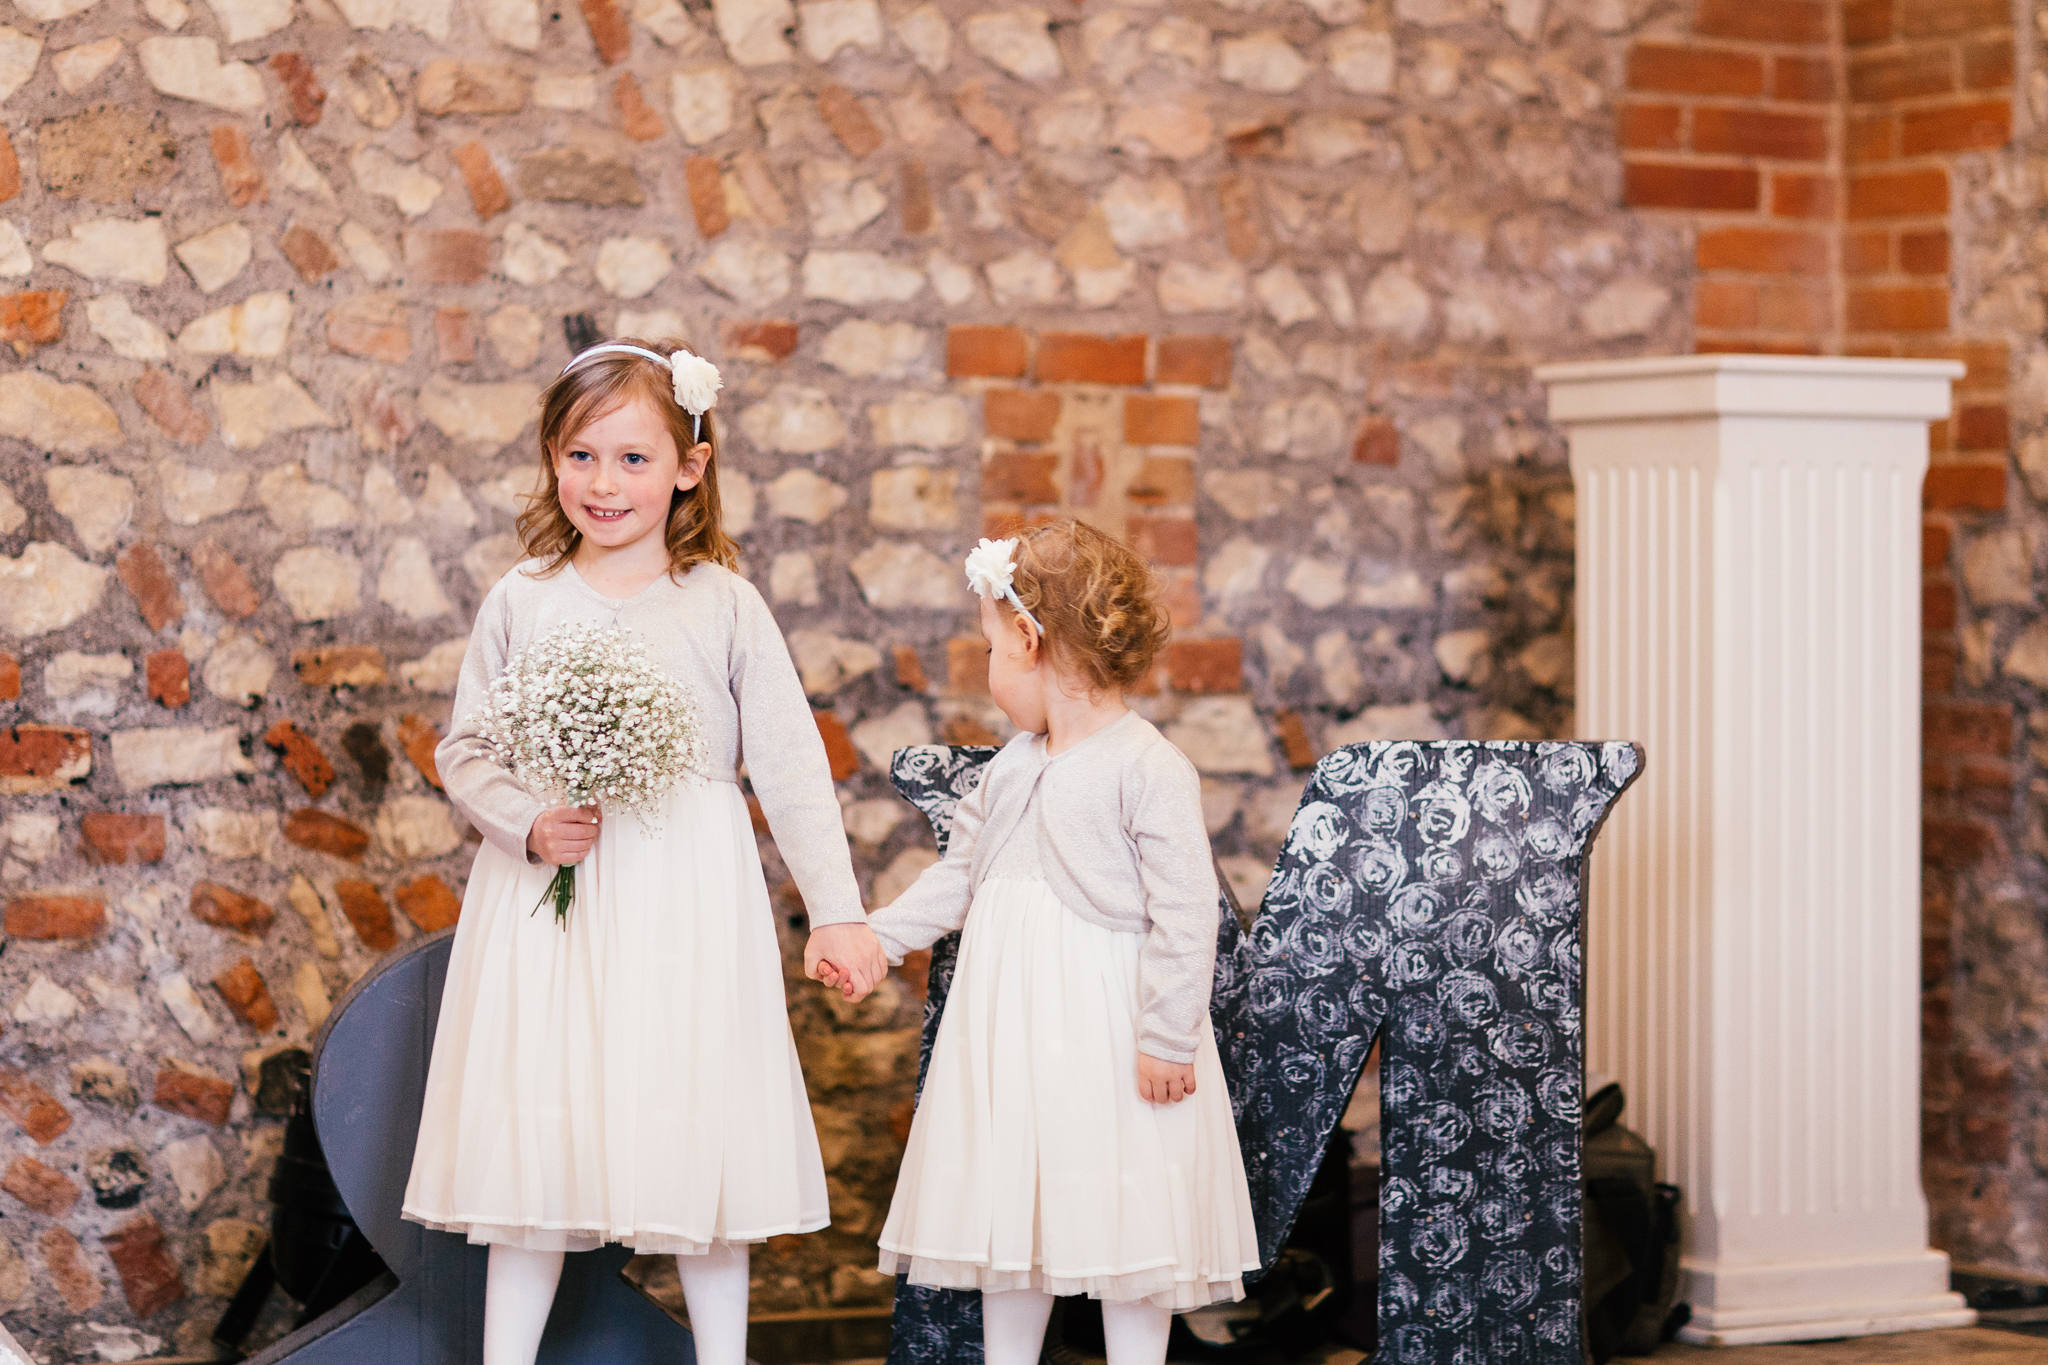 Farbridge Barn Wedding Creative Alternative Photo Chichester Joanna Nicole Photography (42 of 133).jpg